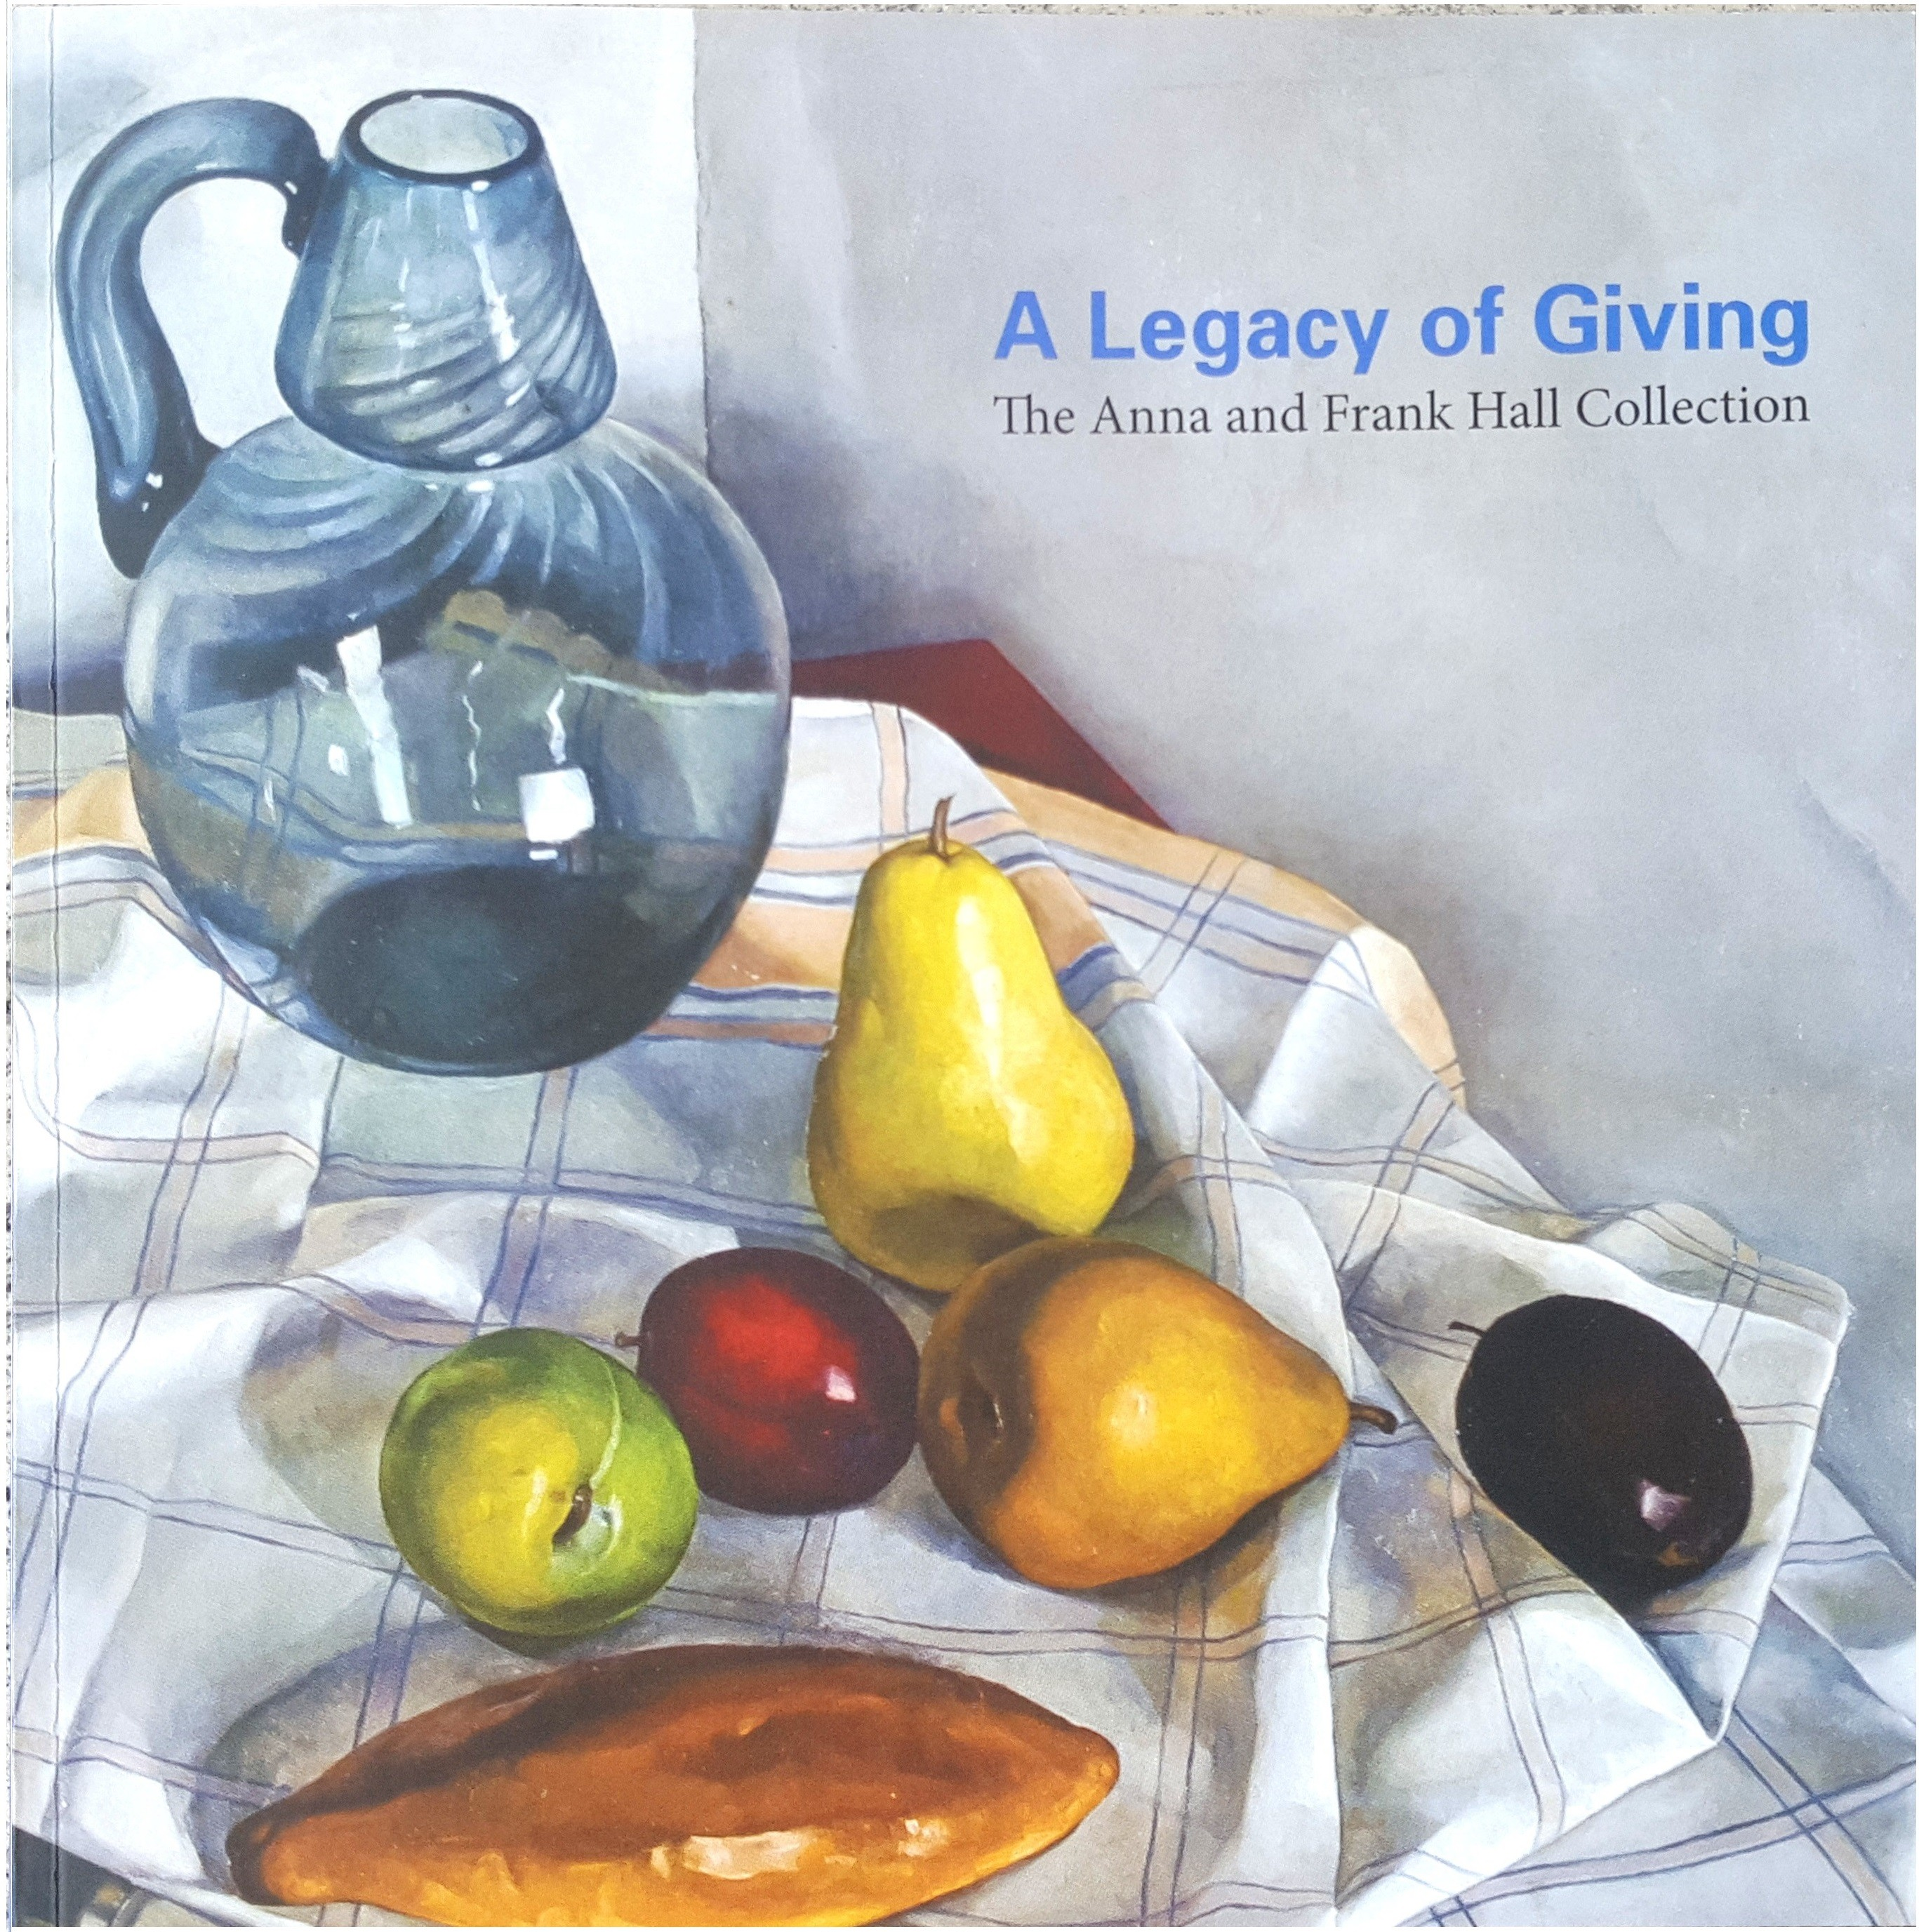 A Legacy of Giving: The Anna and Frank Hall Collection